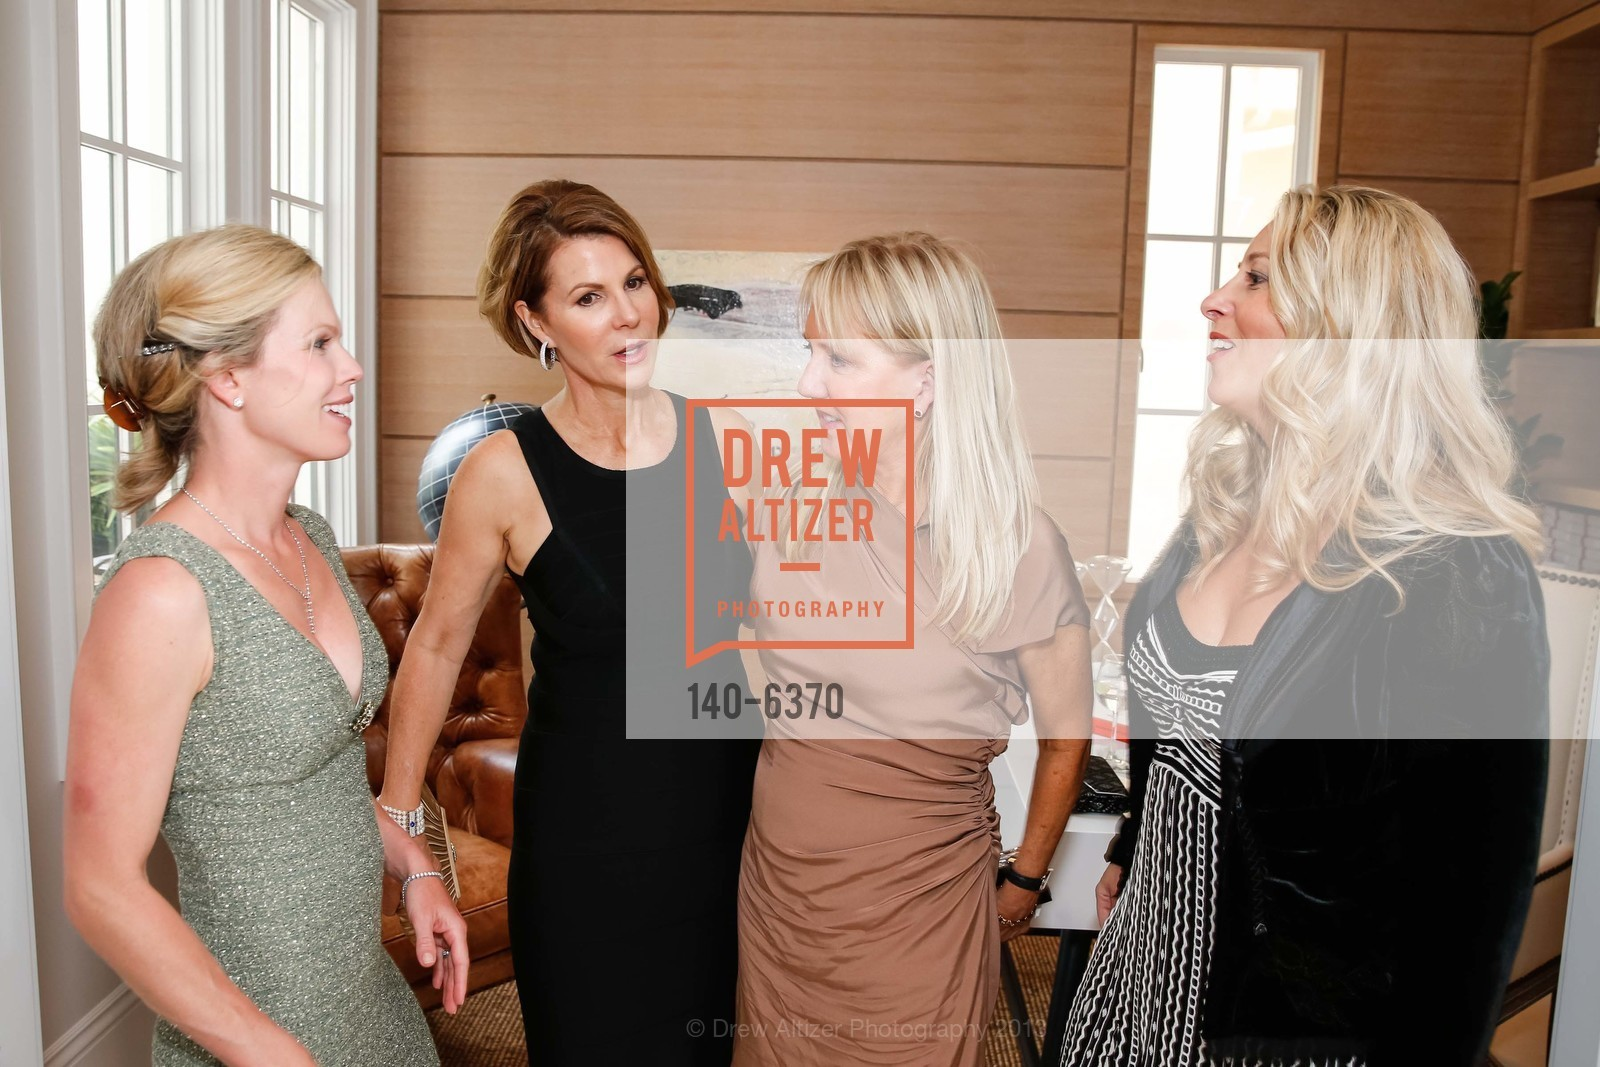 Claire Fluhr, Katie Jarman, Carolyn Stuart, Virginia Ziegler, OPERA GALA Patrons Party, US, August 28th, 2013,Drew Altizer, Drew Altizer Photography, full-service agency, private events, San Francisco photographer, photographer california